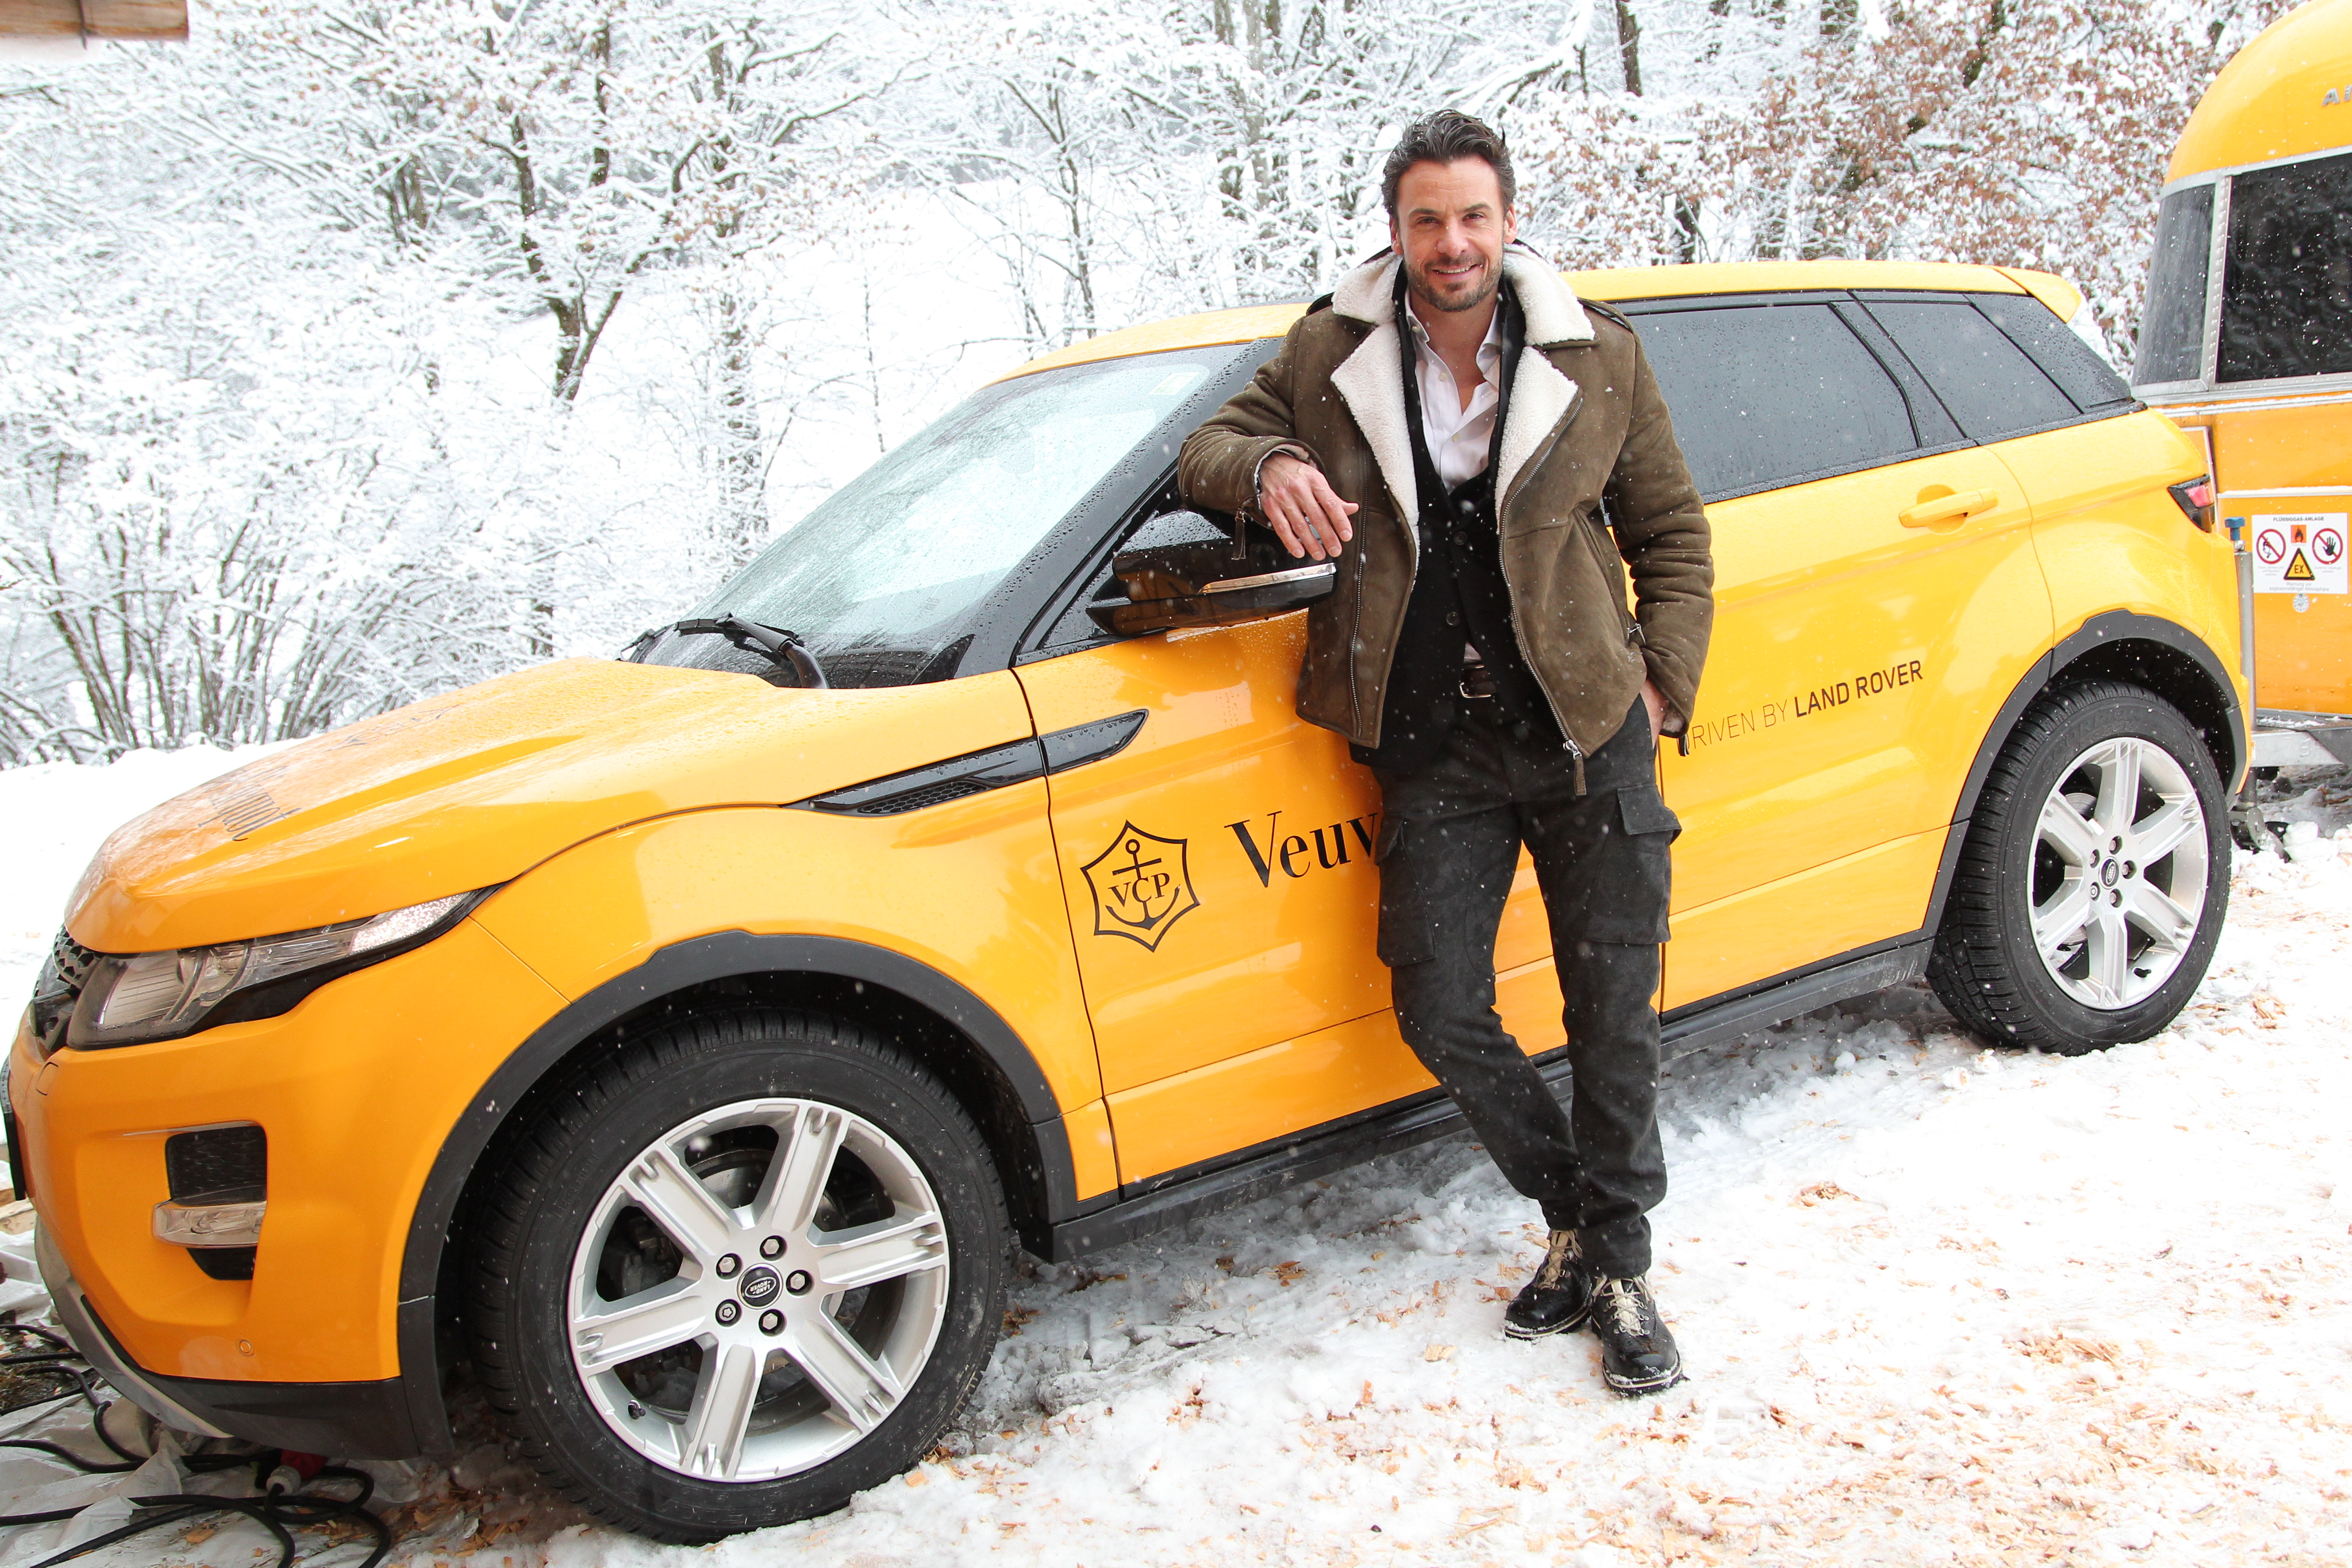 zahlreiche stars feiern mit jaguar land rover bei clicquot in the snow in kitzb hel. Black Bedroom Furniture Sets. Home Design Ideas